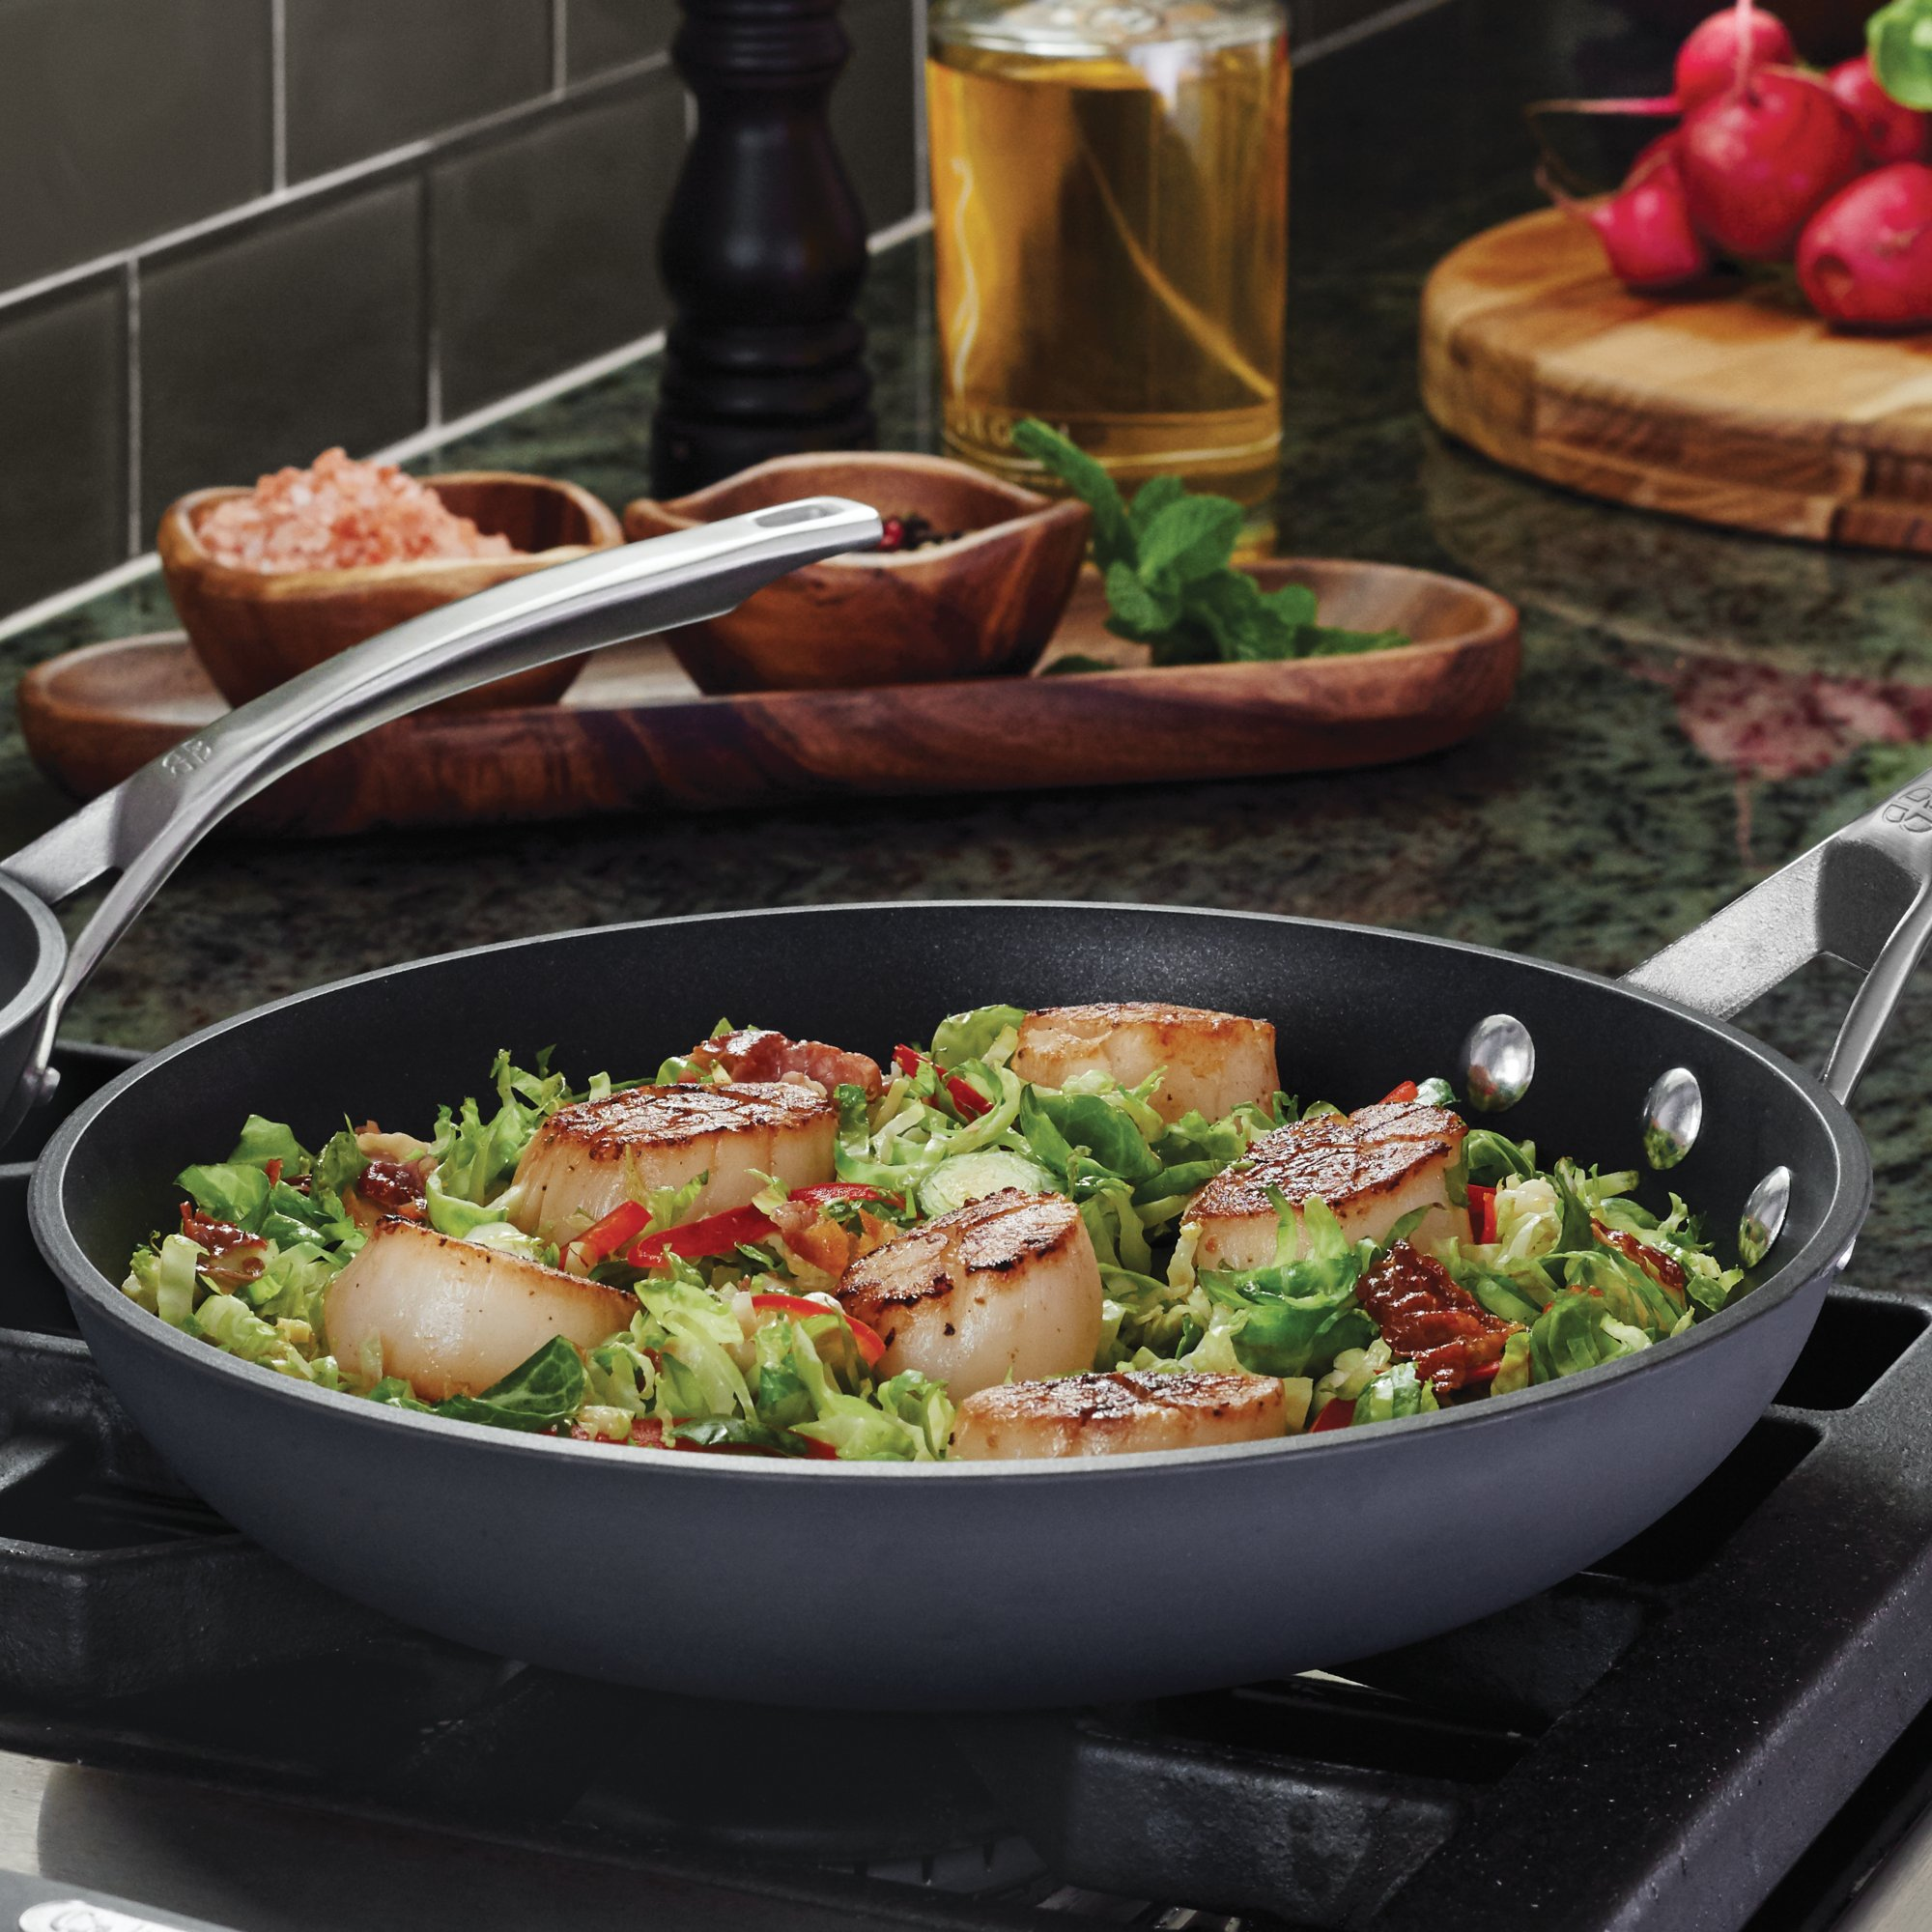 Calphalon Signature Nonstick 8 In And 10 In Omelette